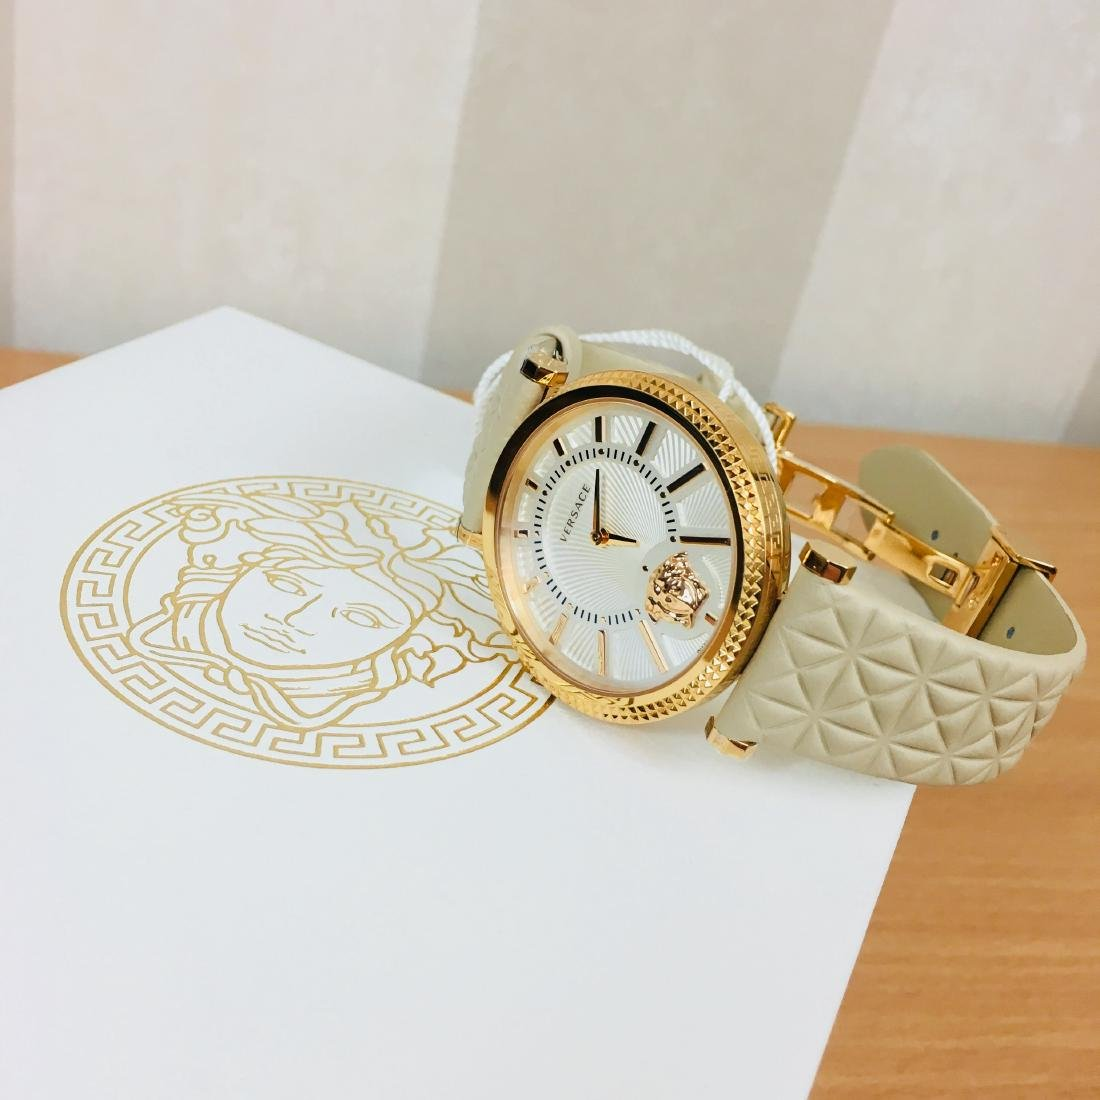 VERSACE V-HELIX Swiss Made Ladies Luxury Watch - 5